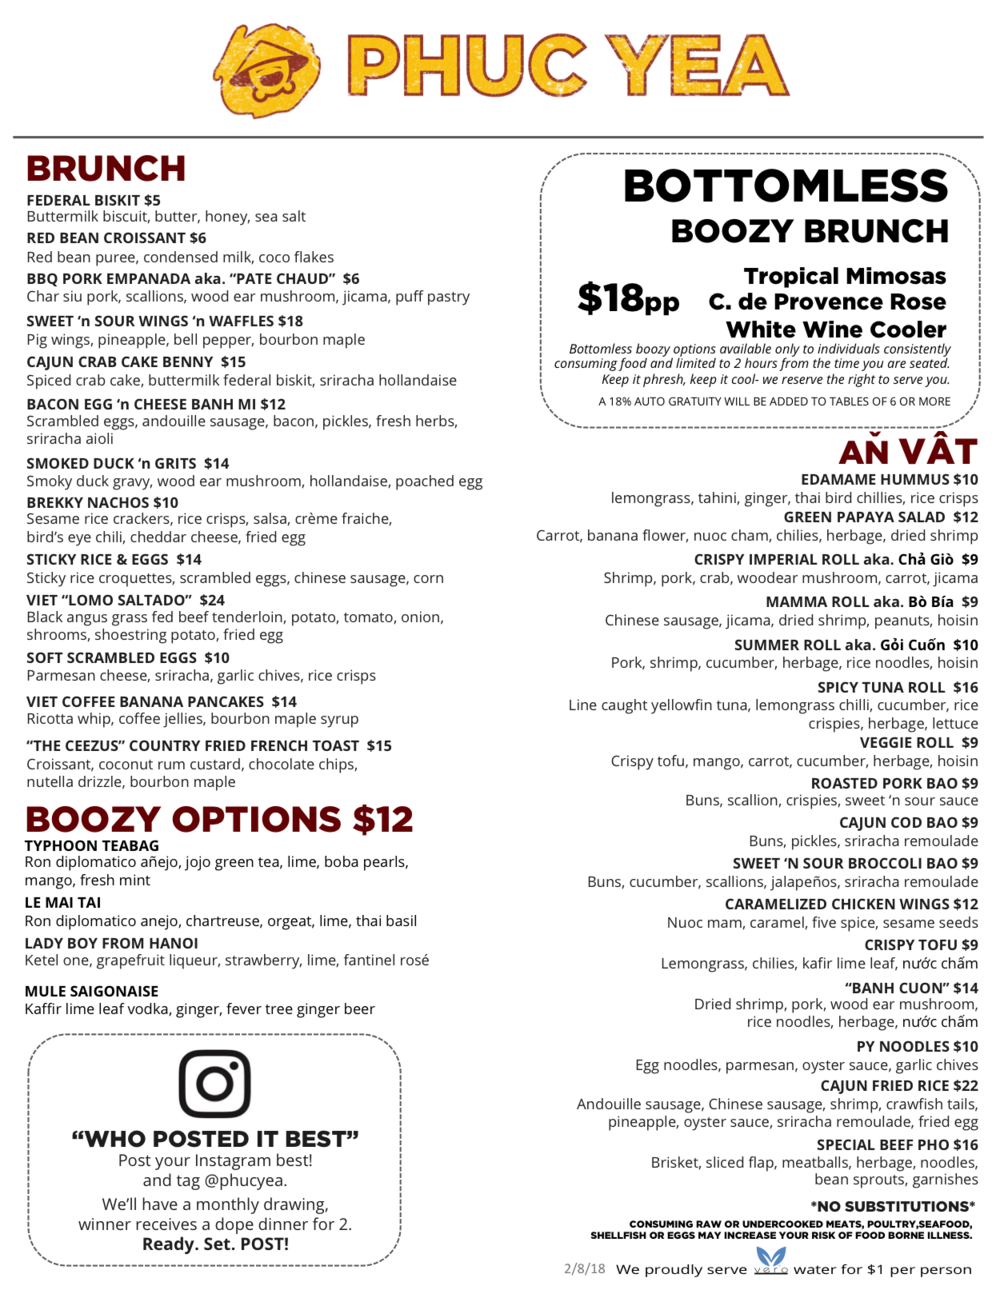 Brunch Menu 08.01.18 - Subject to change based on availability.